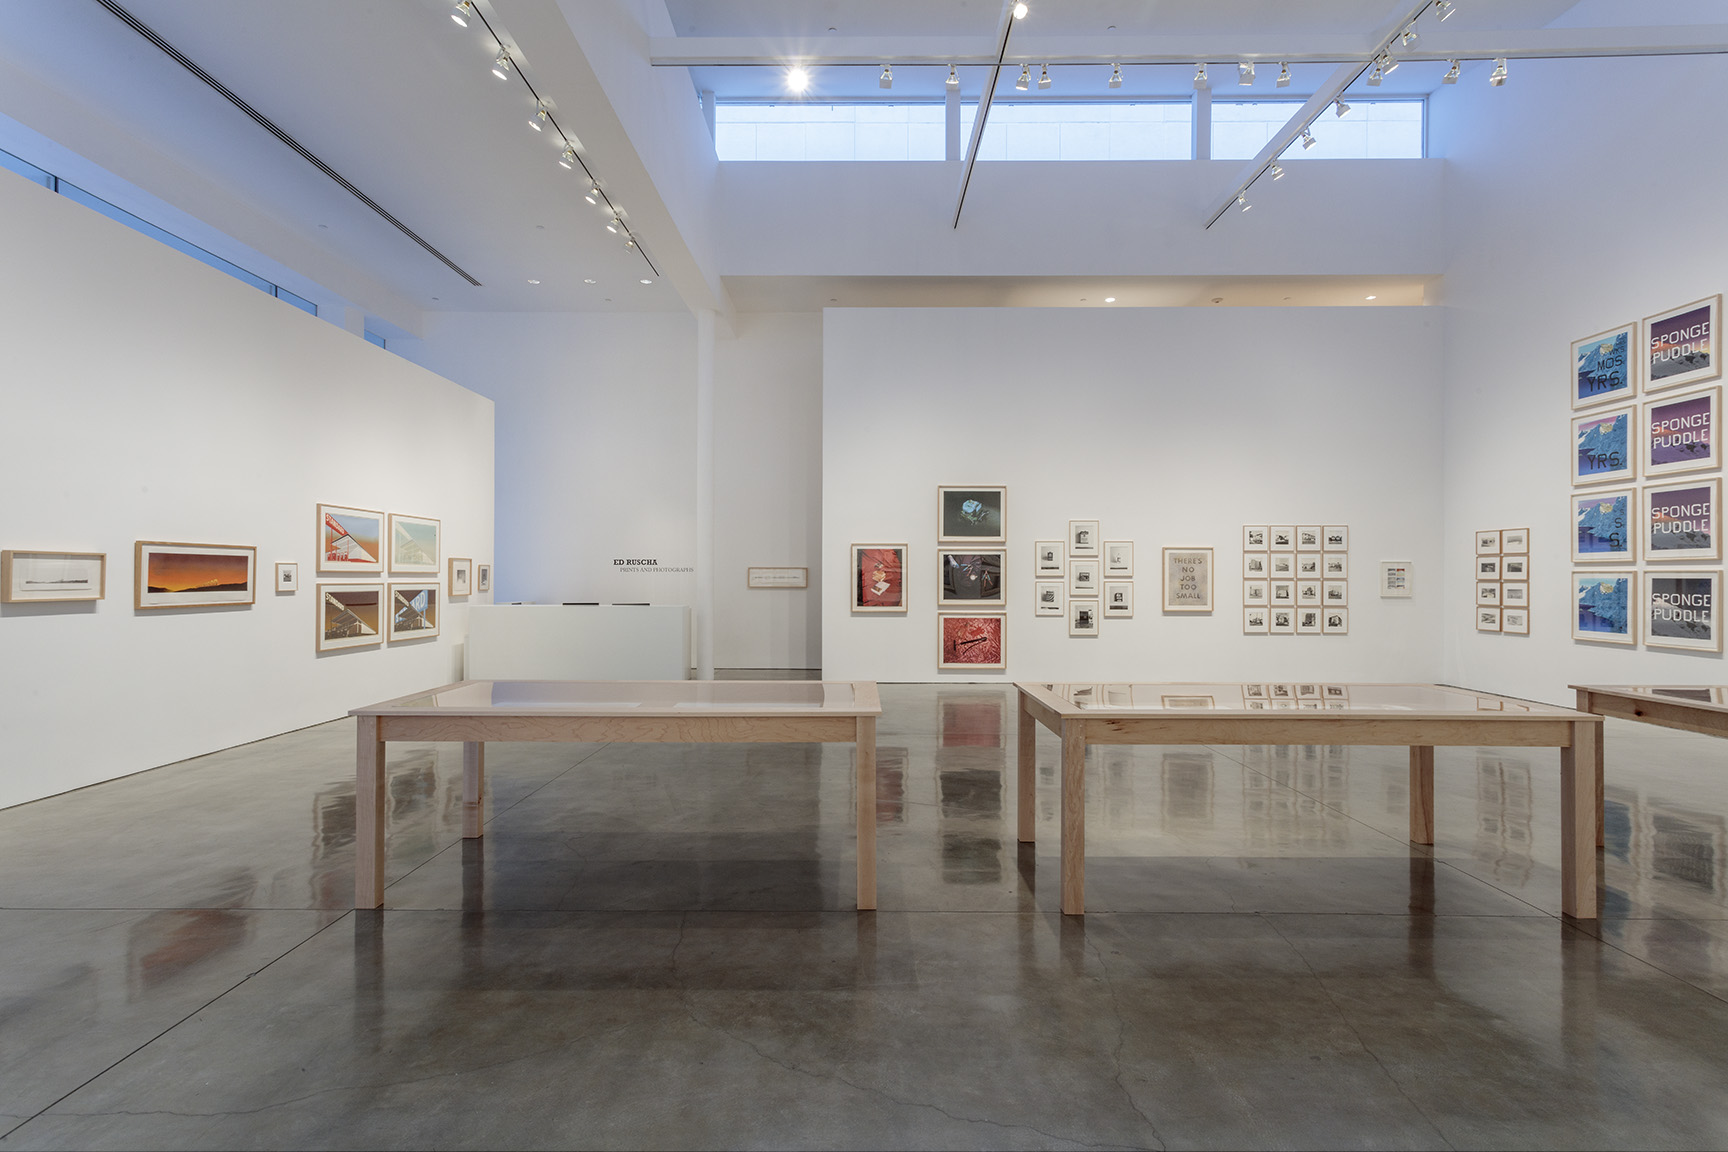 All artworks © Ed Ruscha. Courtesy of the artist and Gagosian Gallery. Photography: Josh White/JWPictures.com.